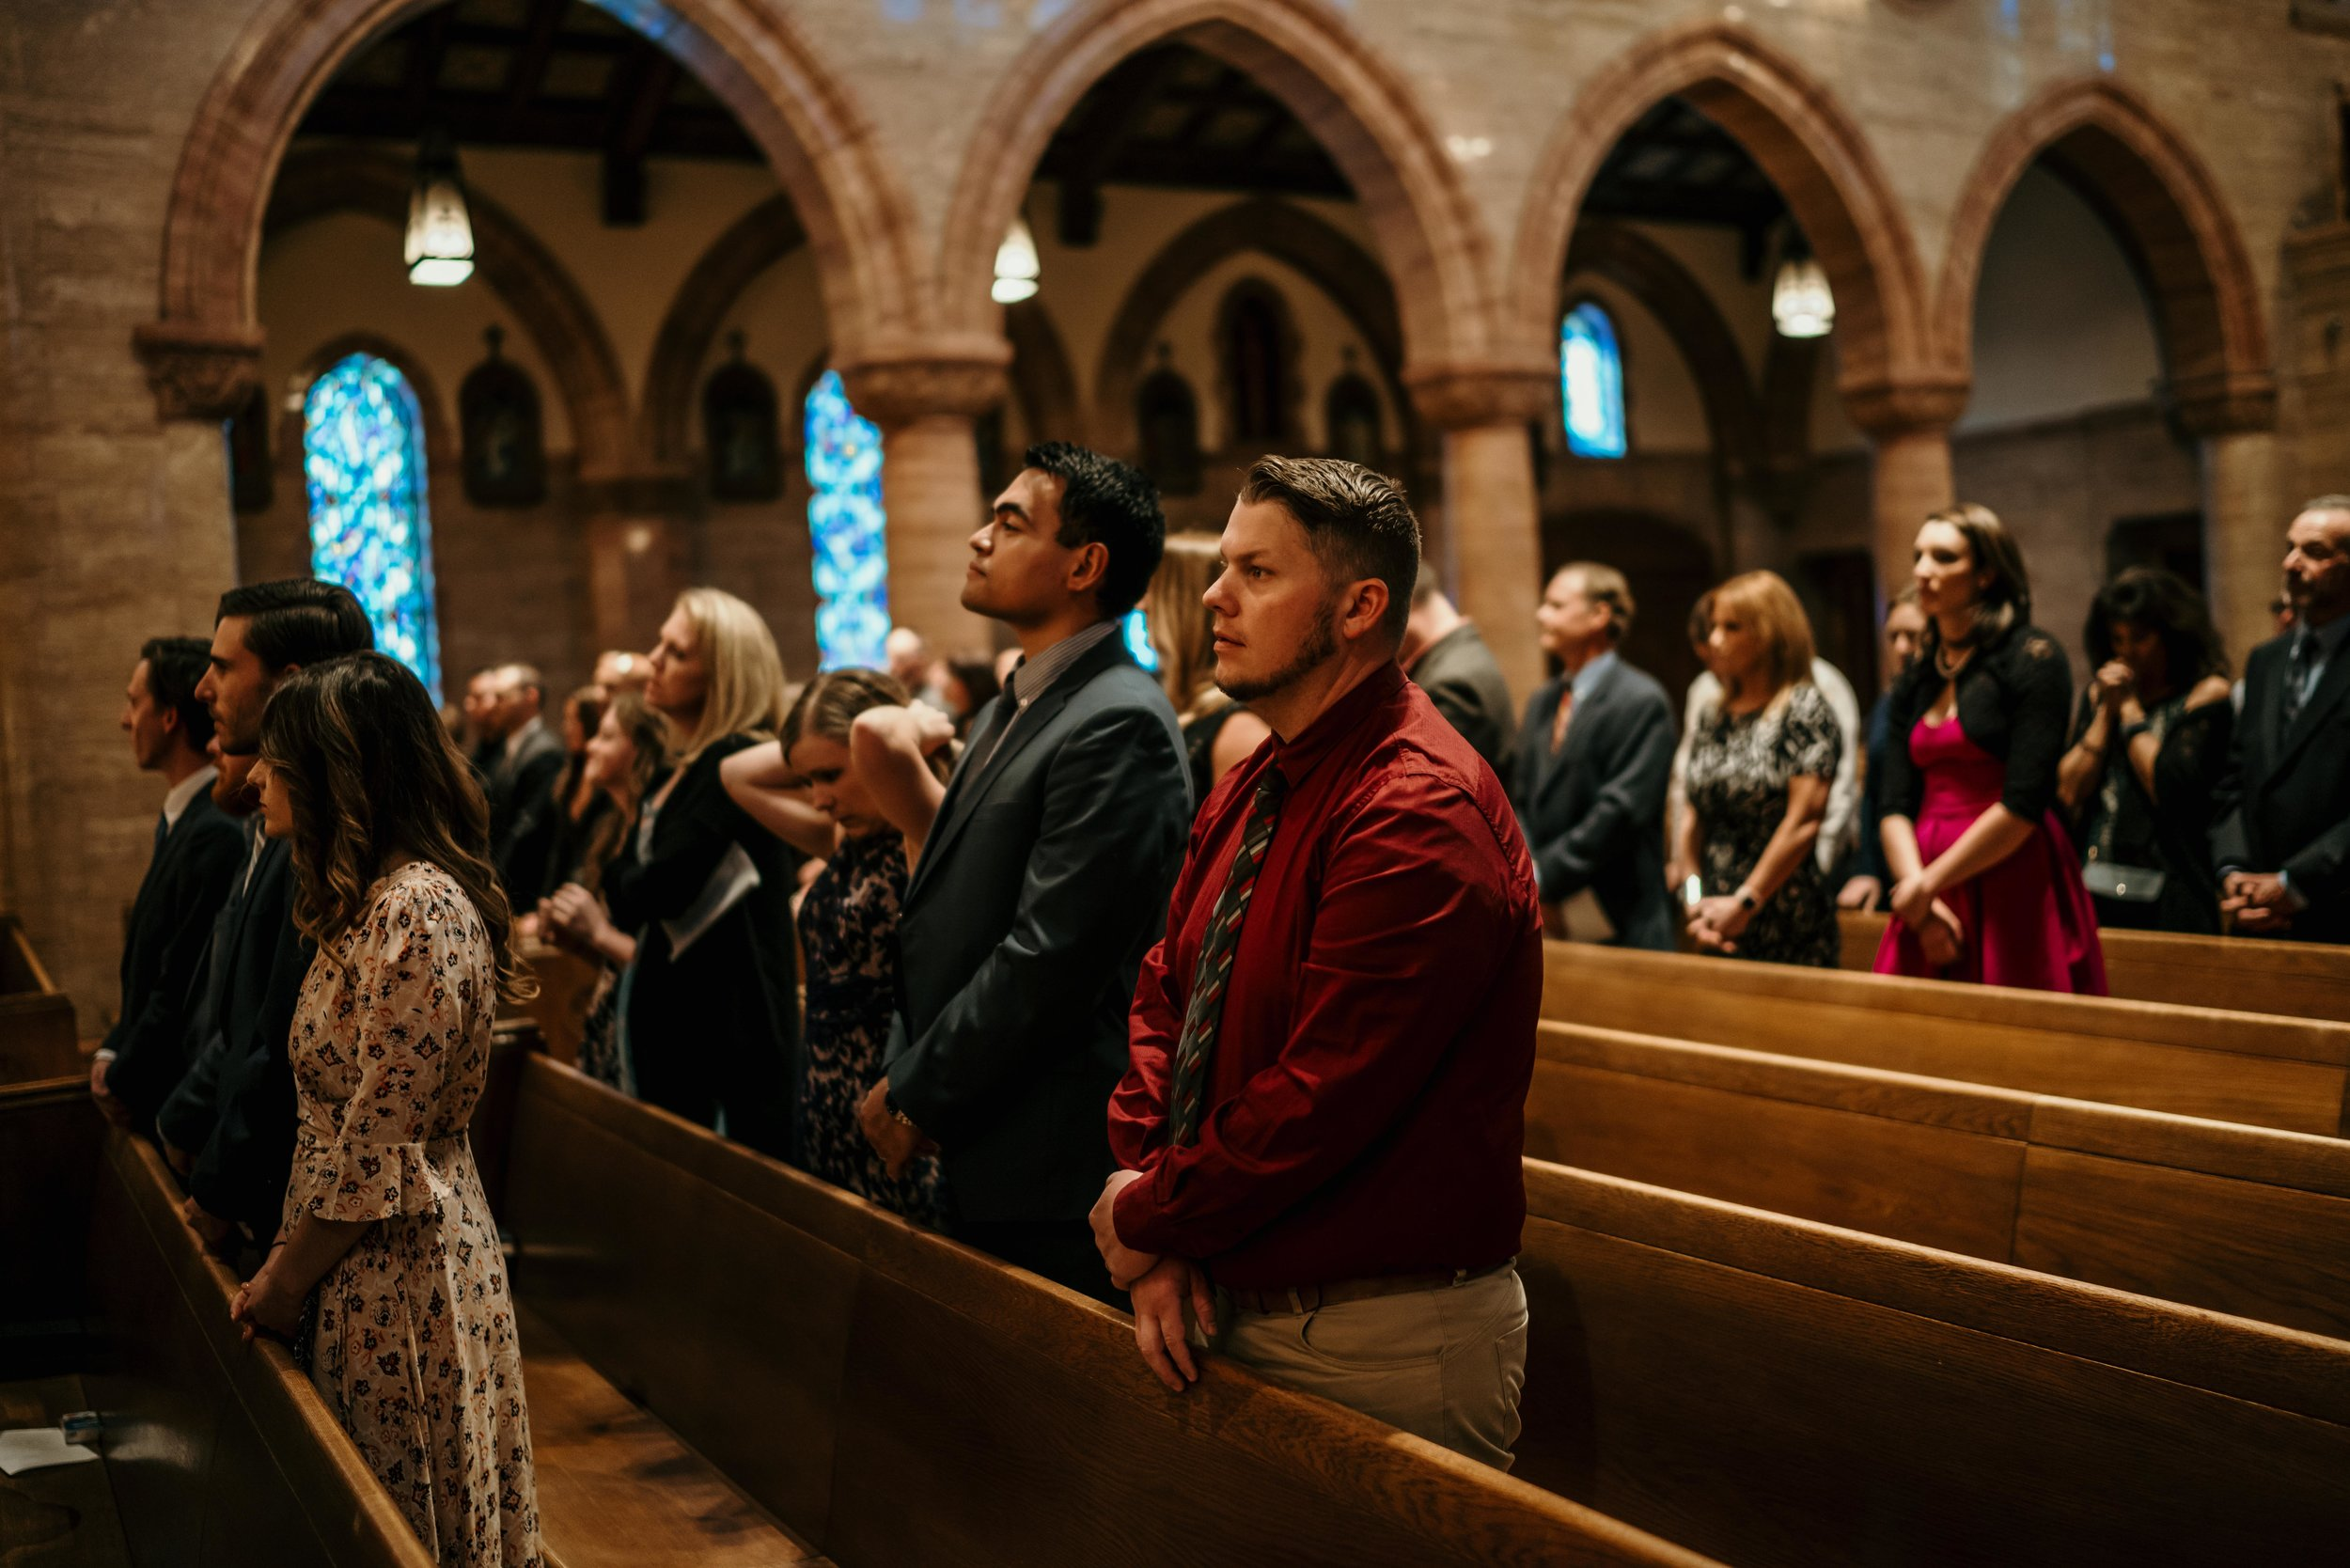 denver wedding at holy ghost church guests in pews